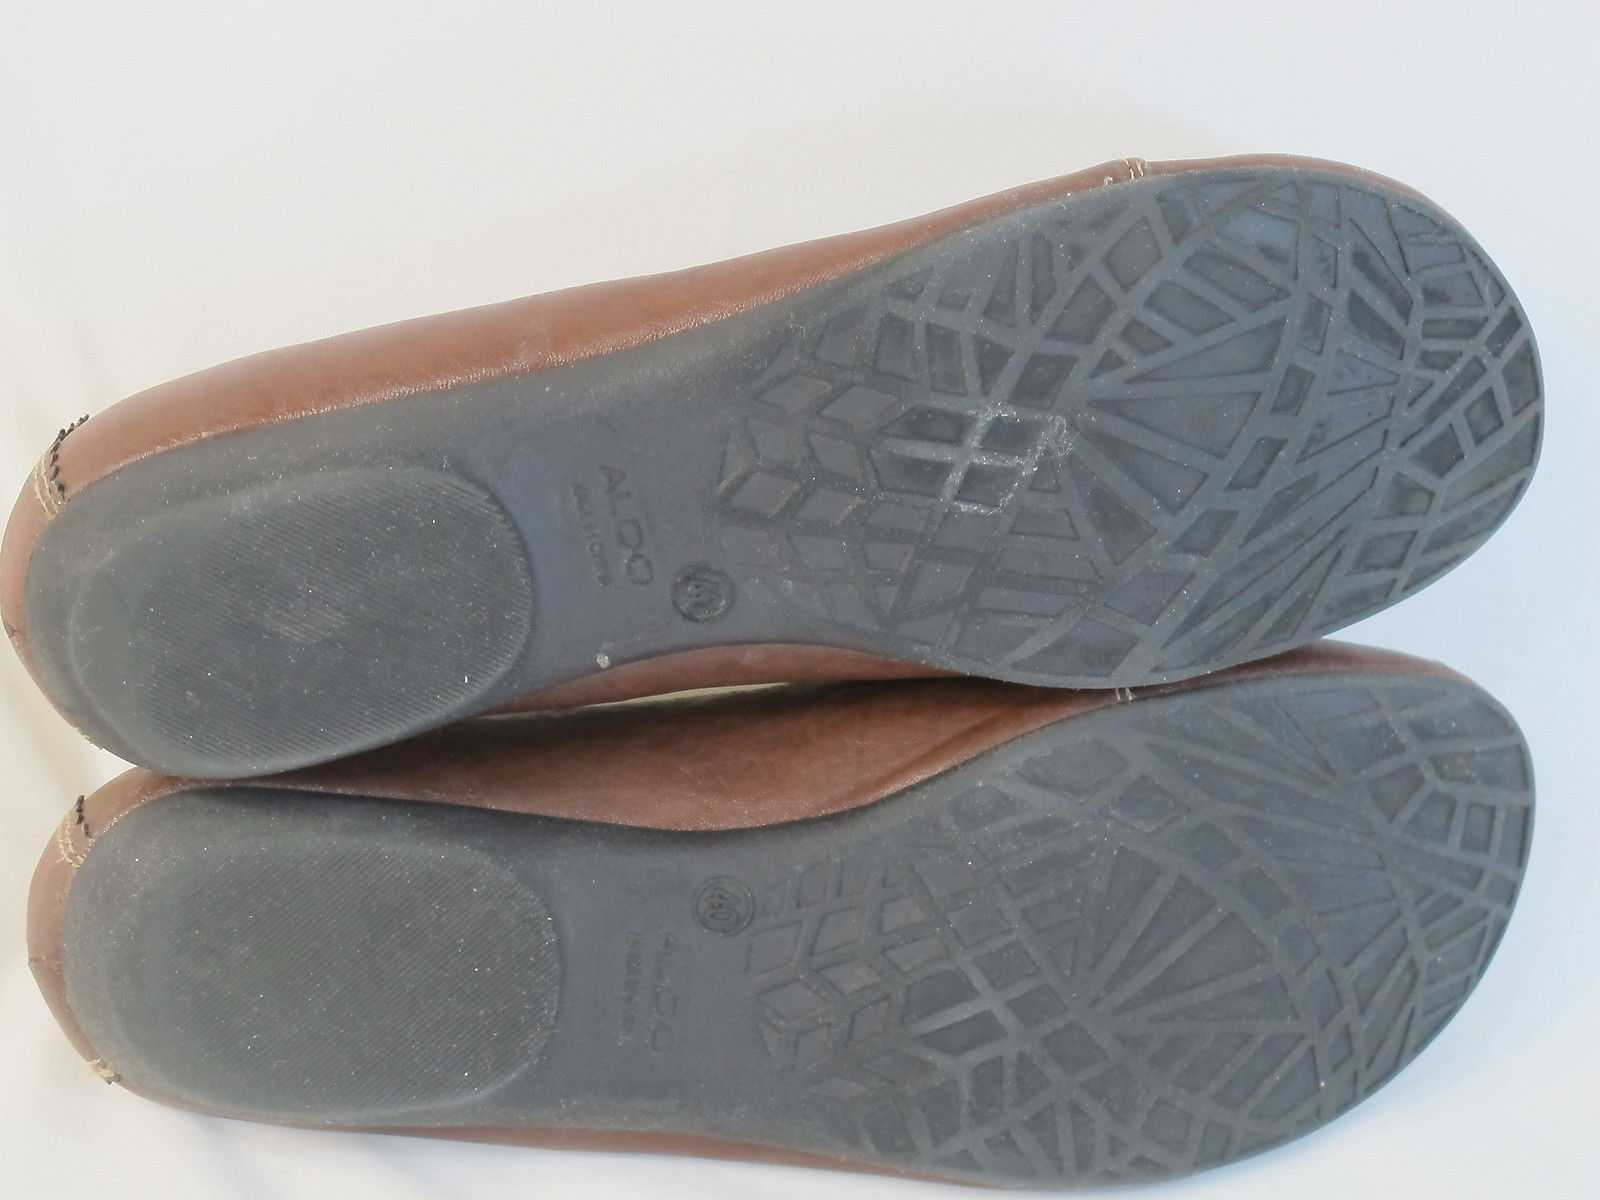 ALDO Brown Loafer Flats 9 M US Excellent Condition EUR 40